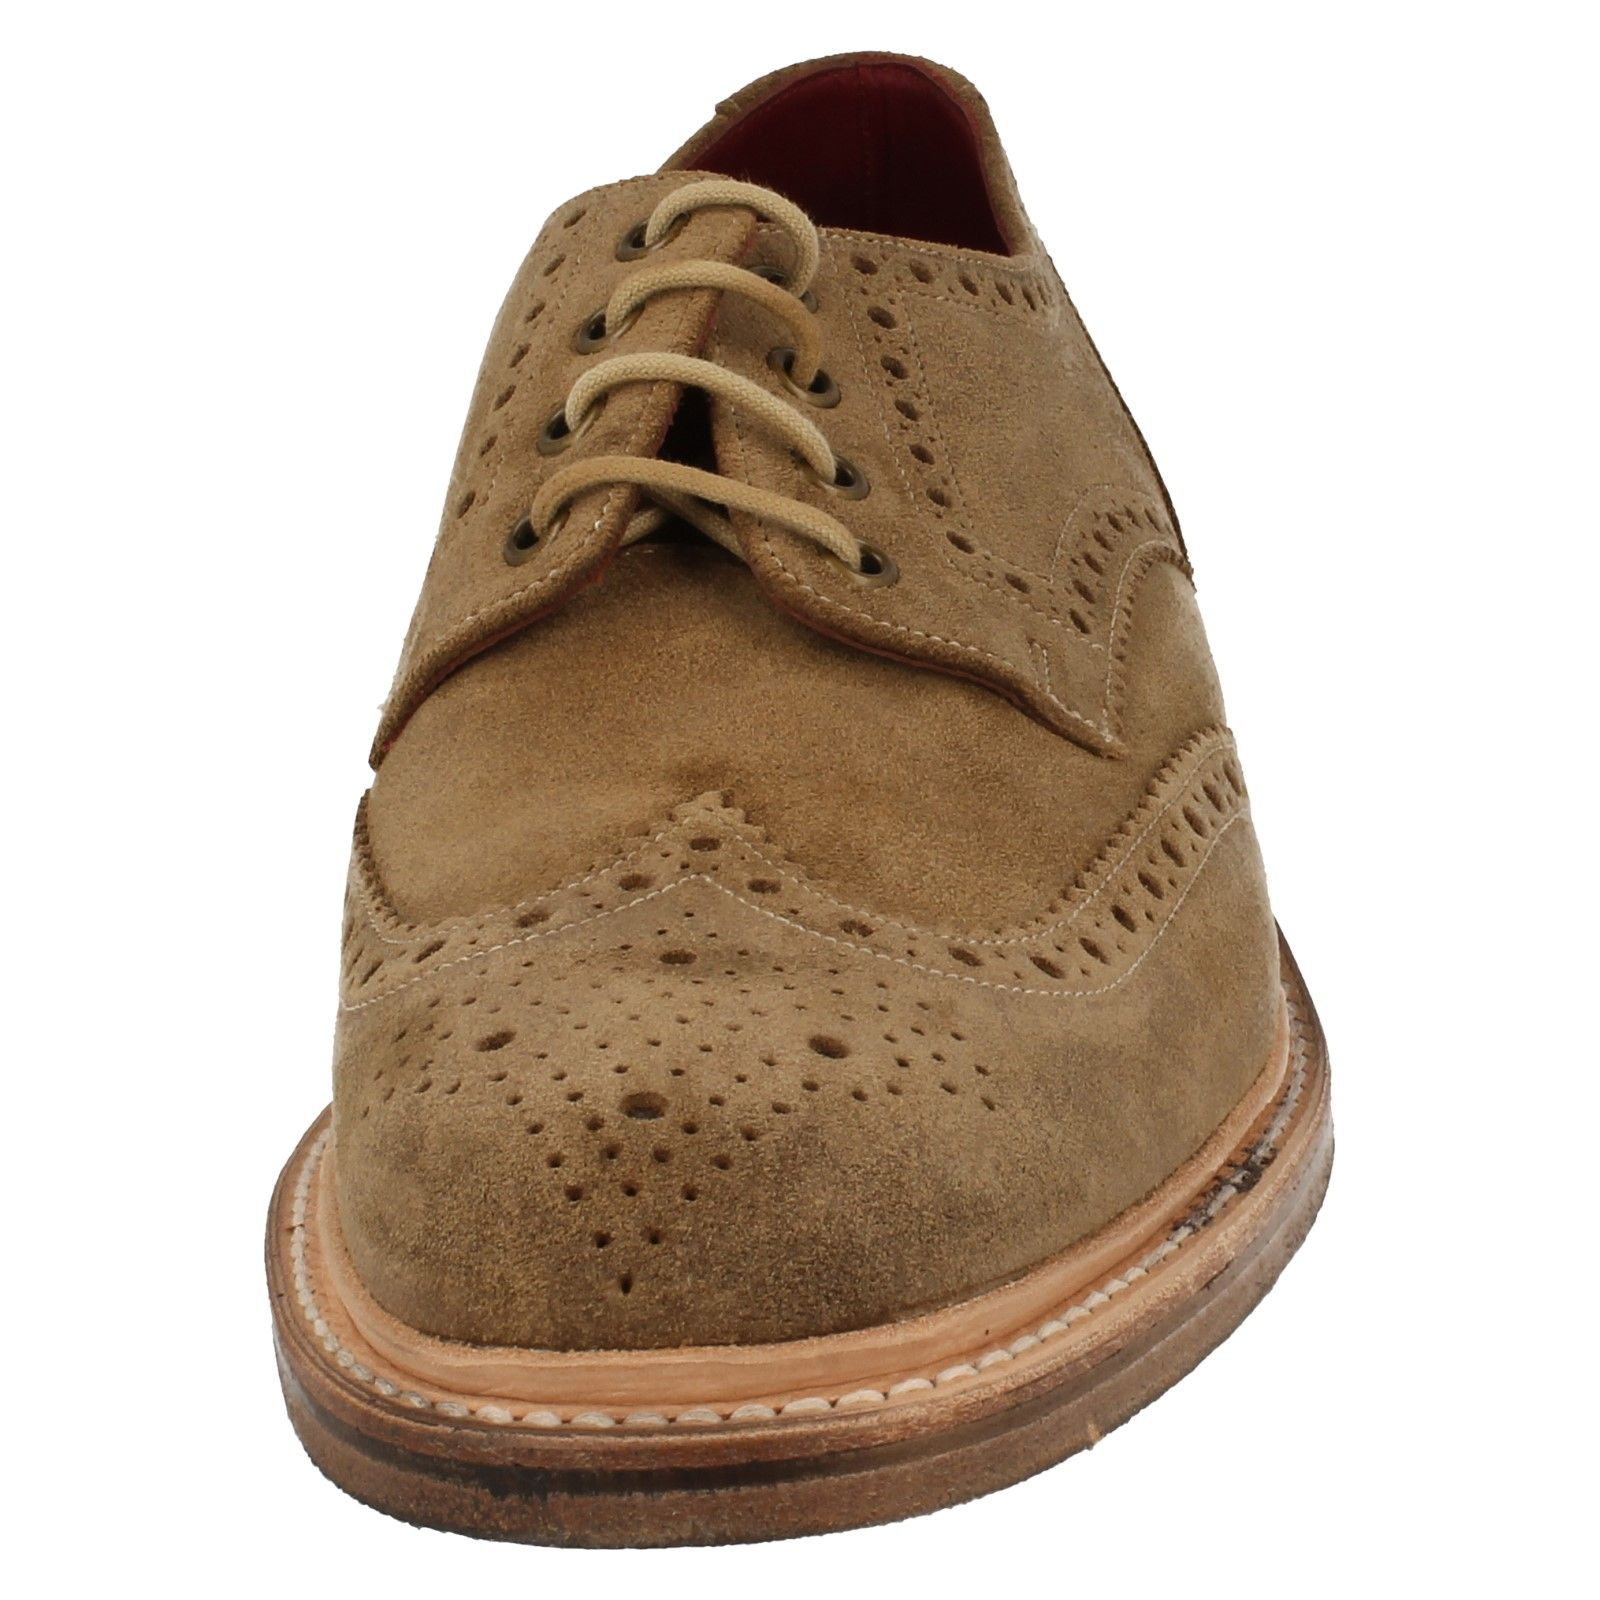 Alpine Swiss Beau Mens Dress Shoes Genuine Suede Wing Tip Brogue Lace Up Oxfords $ $ Men's Suede Wing Tip Dress Shoes By Alpine Swiss Product Features: Genuine Suede Classic Lace Up Oxford Wing Tip with Brogue Detailing and Medallion Toe Updated Classic Look Allows You to.